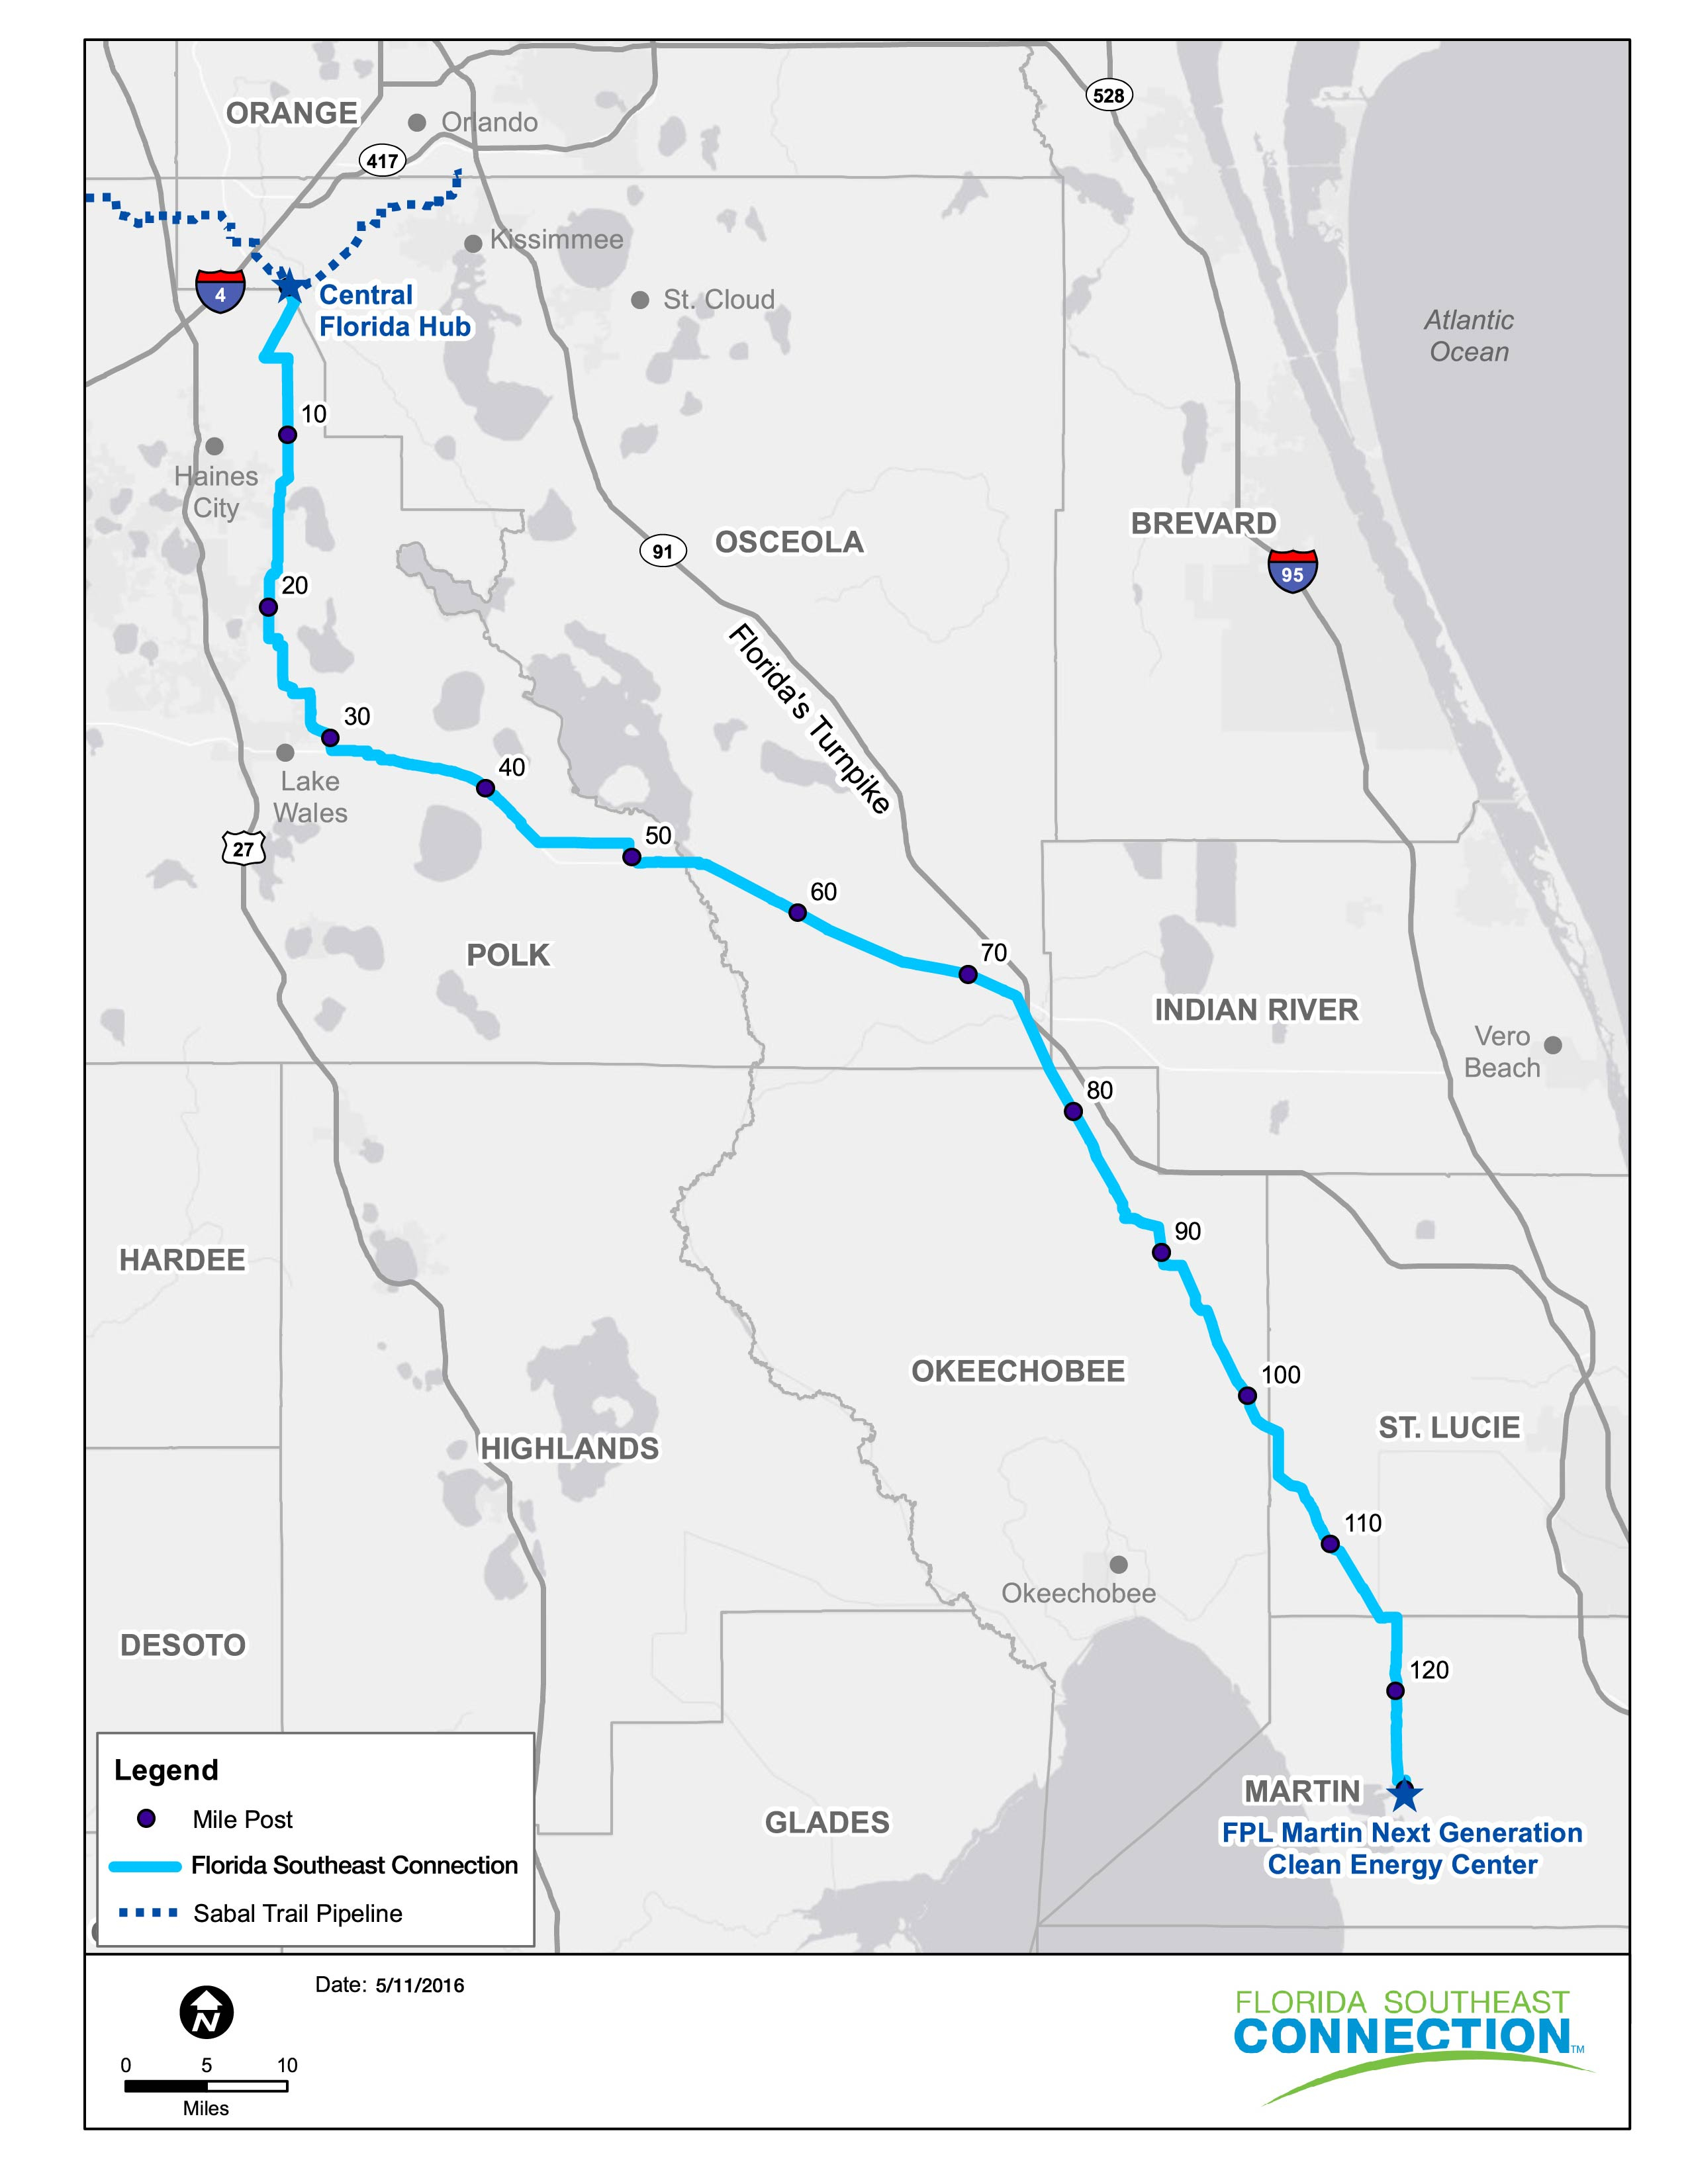 Sabal Trail, Florida Se Connection Gas Pipelines Up And Running - Florida Gas Pipeline Map